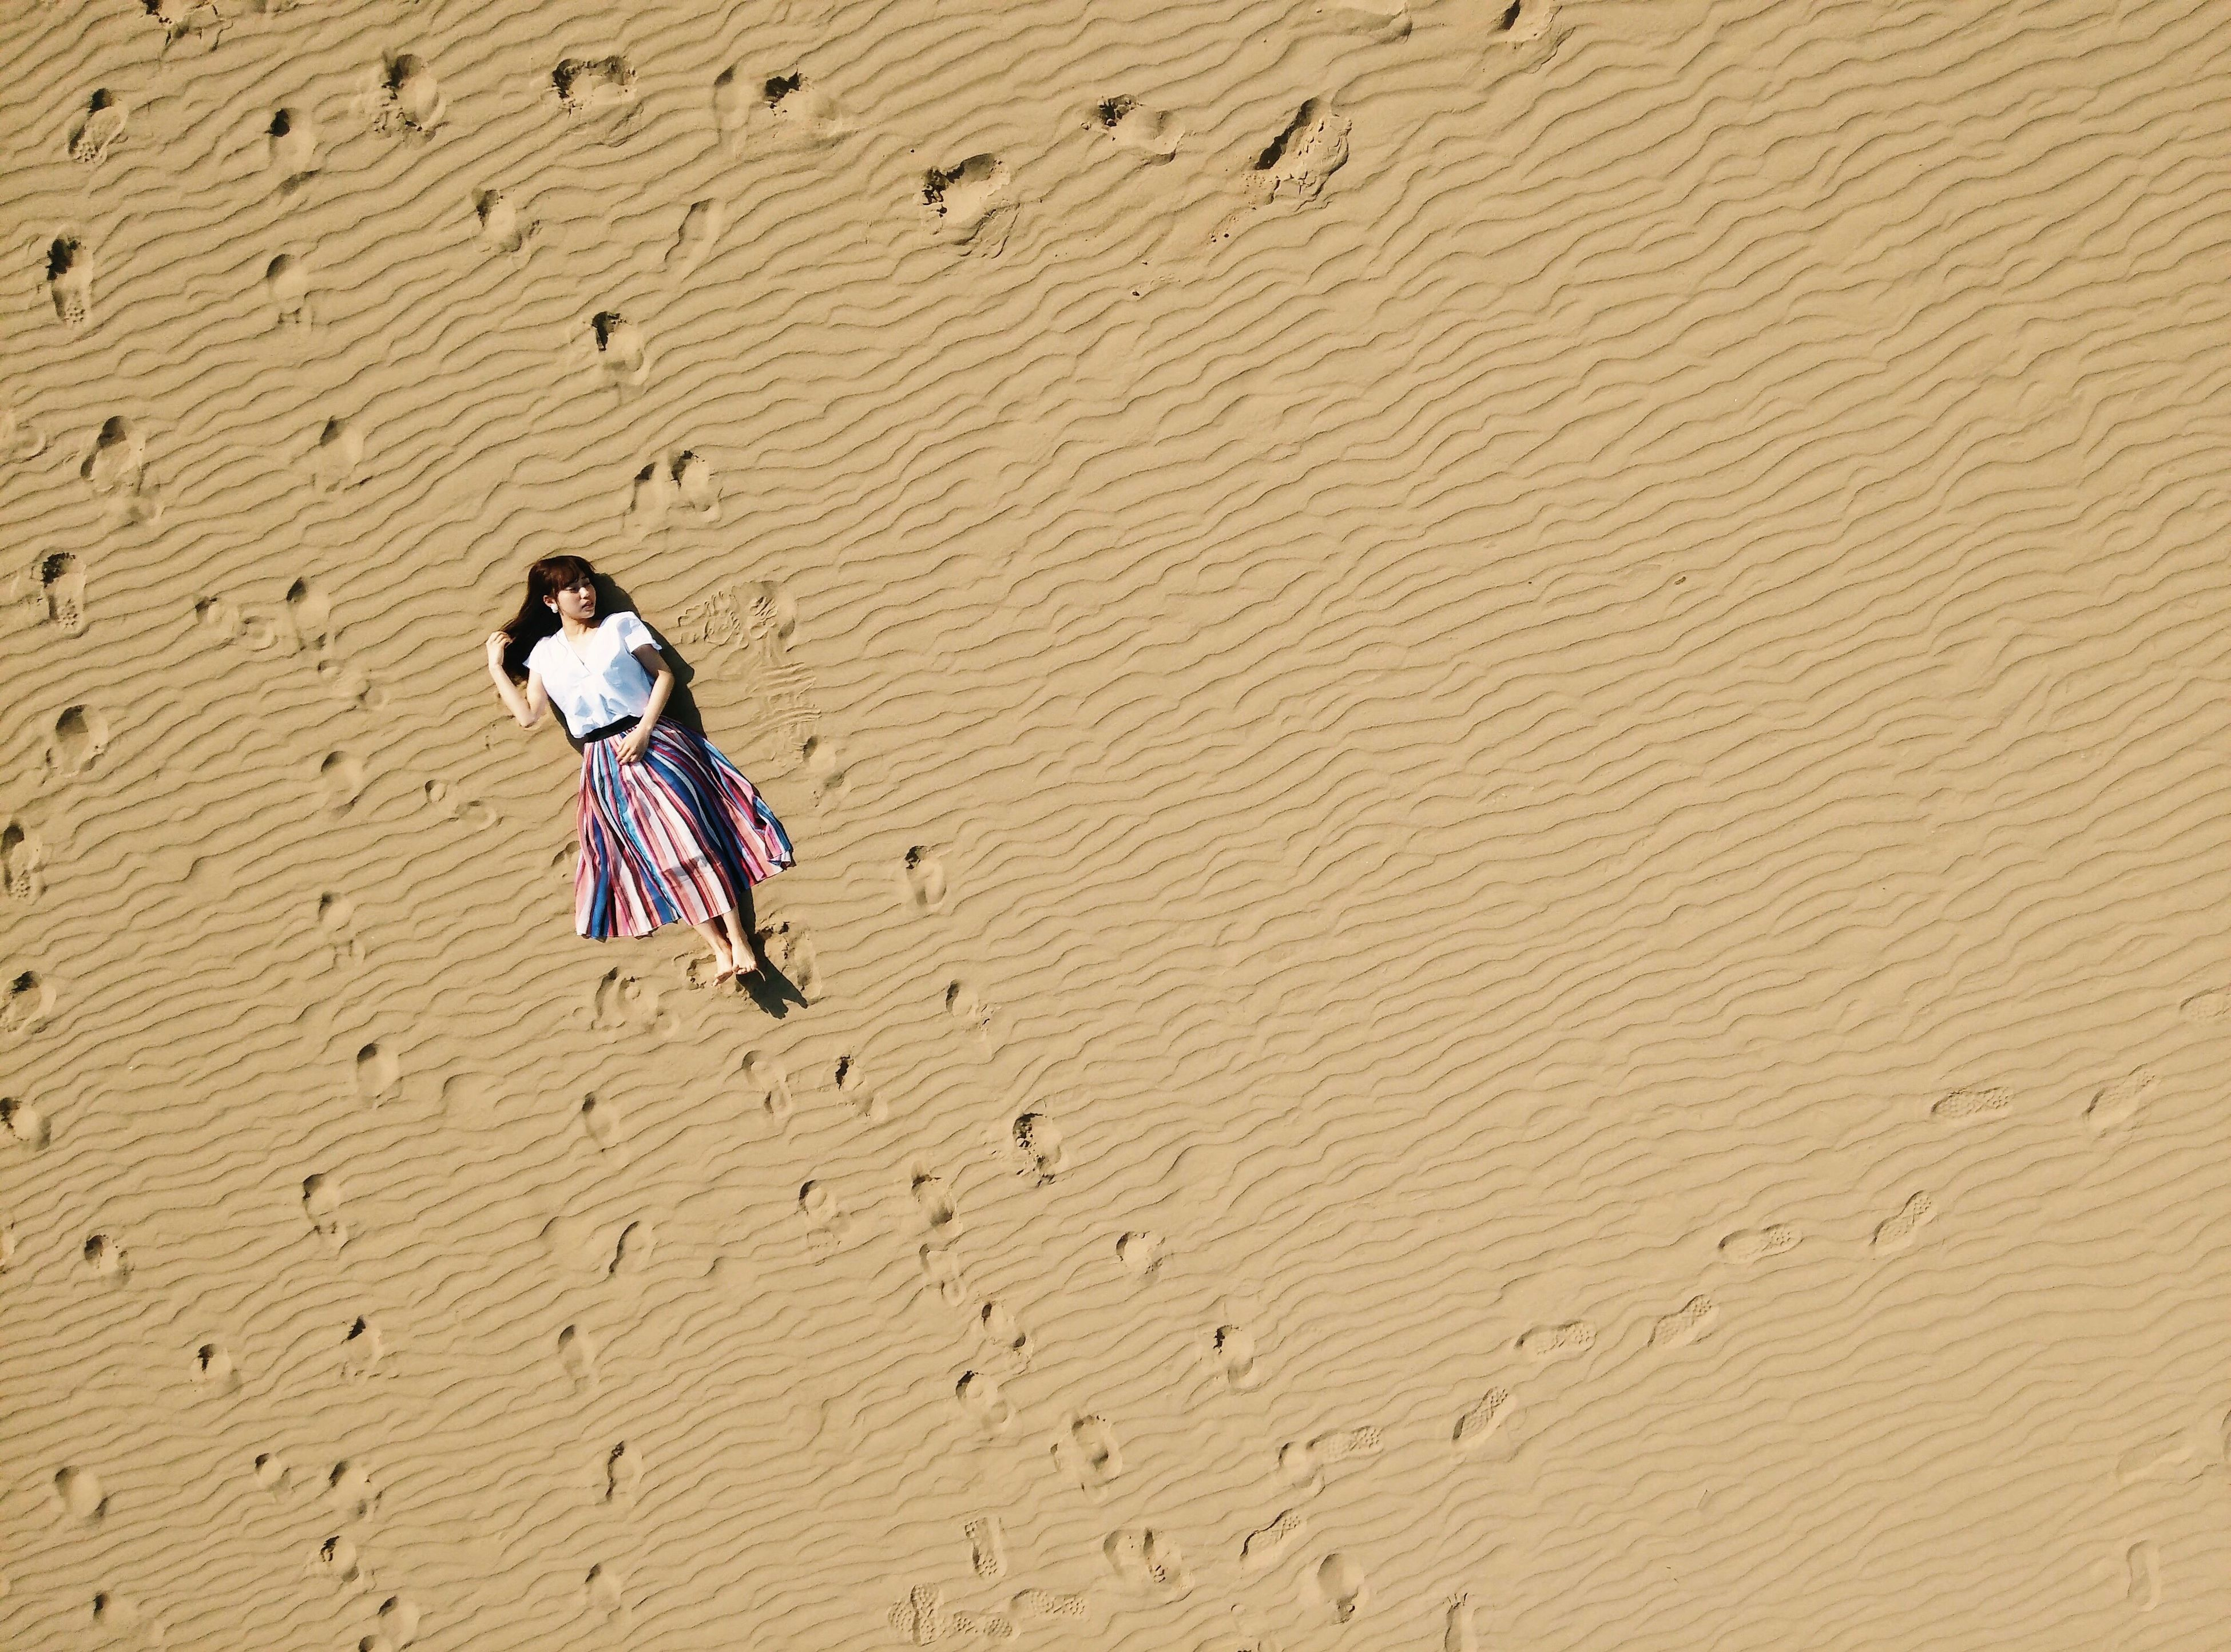 sand, beach, one person, only women, one woman only, outdoors, sand dune, desert, arid climate, adults only, summer, nature, adult, vacations, day, full length, people, women, young adult, one young woman only, young women